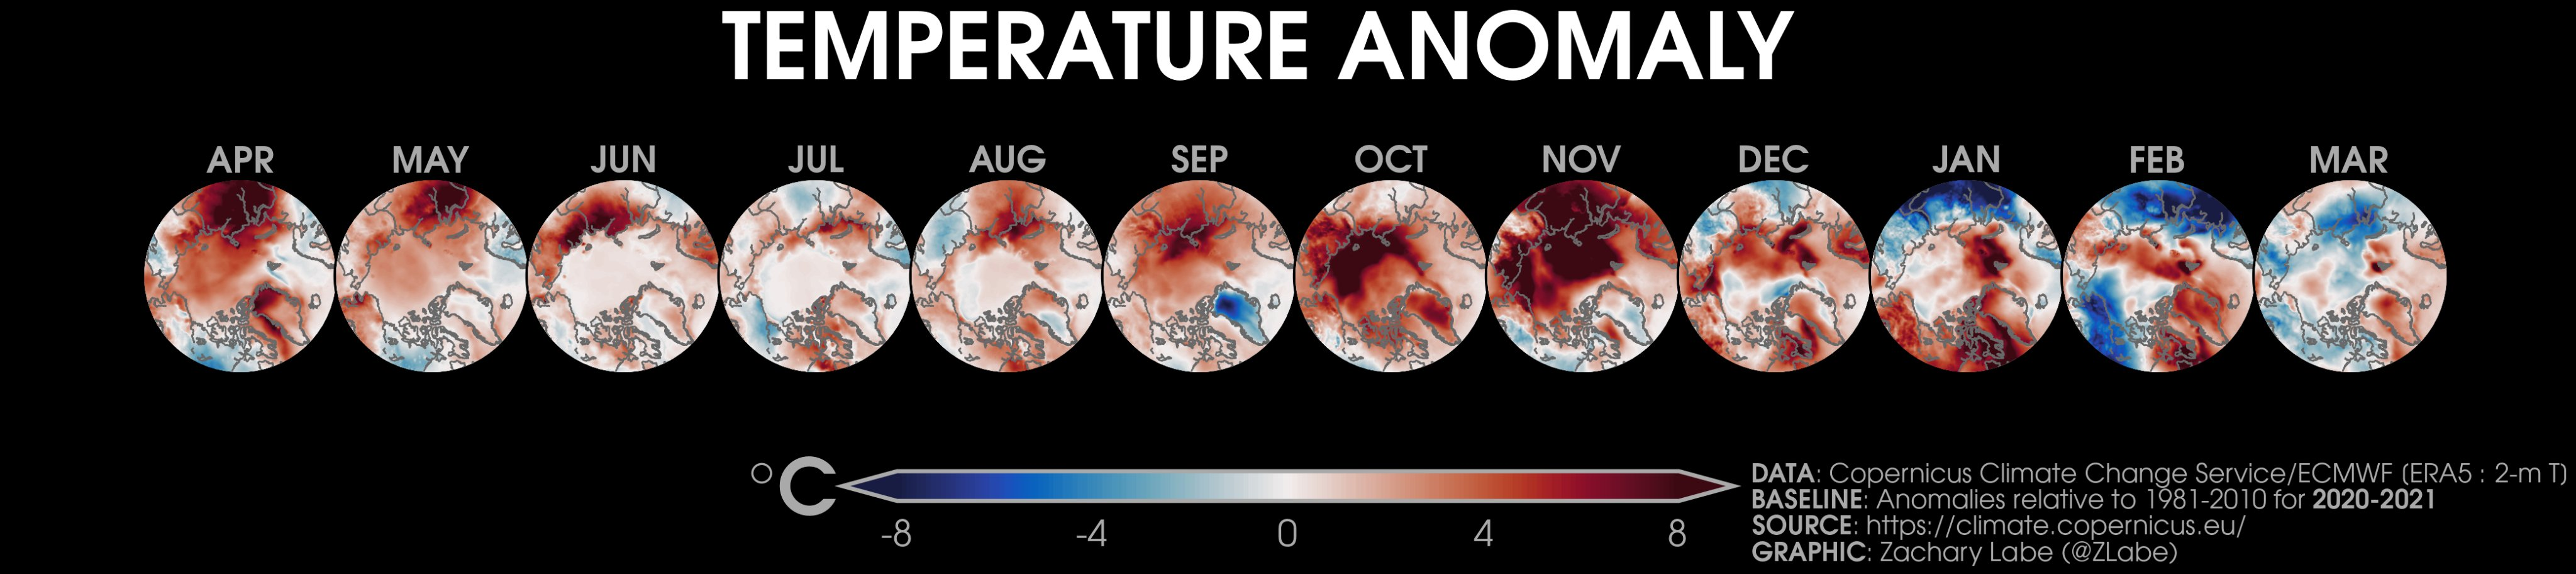 Polar stereographic maps of Arctic 2-m air temperature anomalies over the last 12 months from April 2020 to March 2021 using ERA5 reanalysis